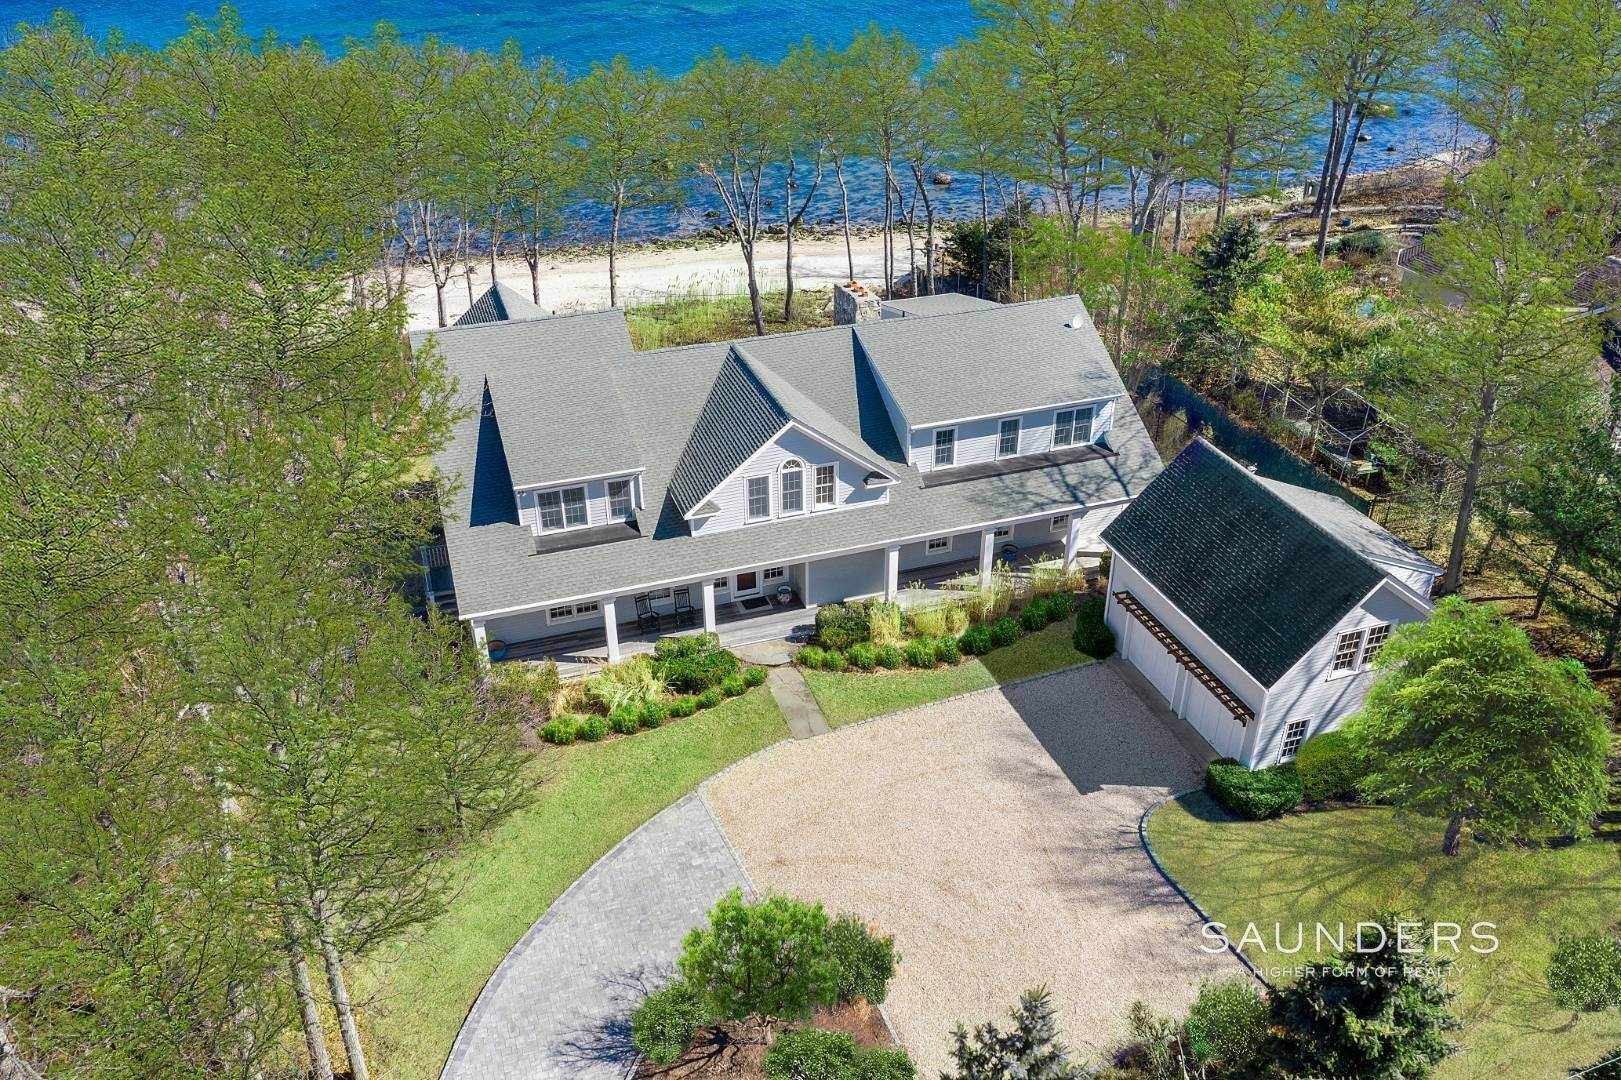 3. Single Family Homes for Sale at Shelter Island Gardiners Bay Beach House With Pool 72 Gardiners Bay Drive, Shelter Island Heights, Shelter Island, NY 11964